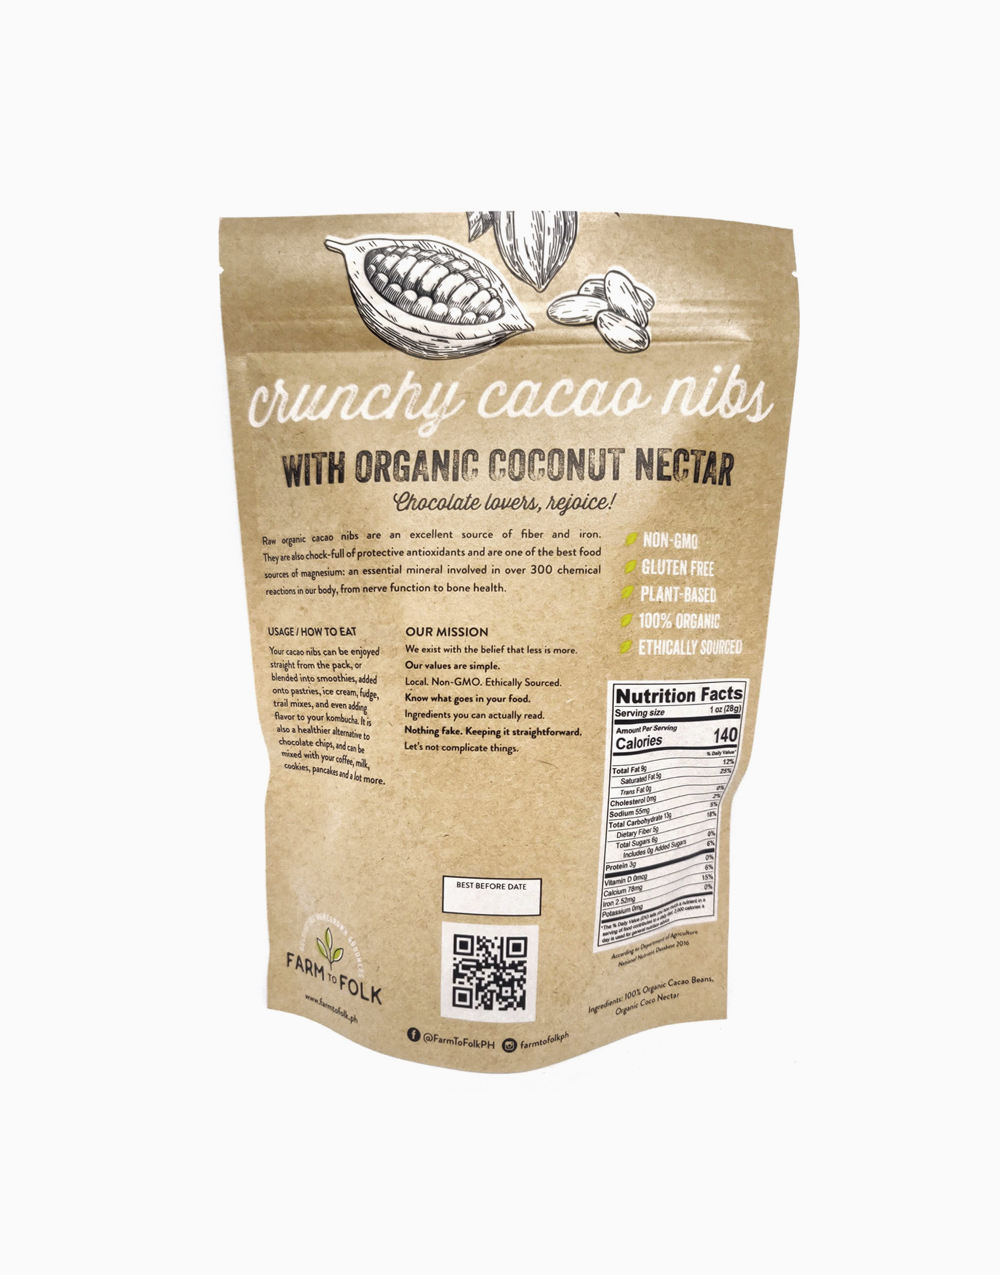 Crunchy Cacao Nibs with Organic Coconut Nectar (250g) by Farm to Folk